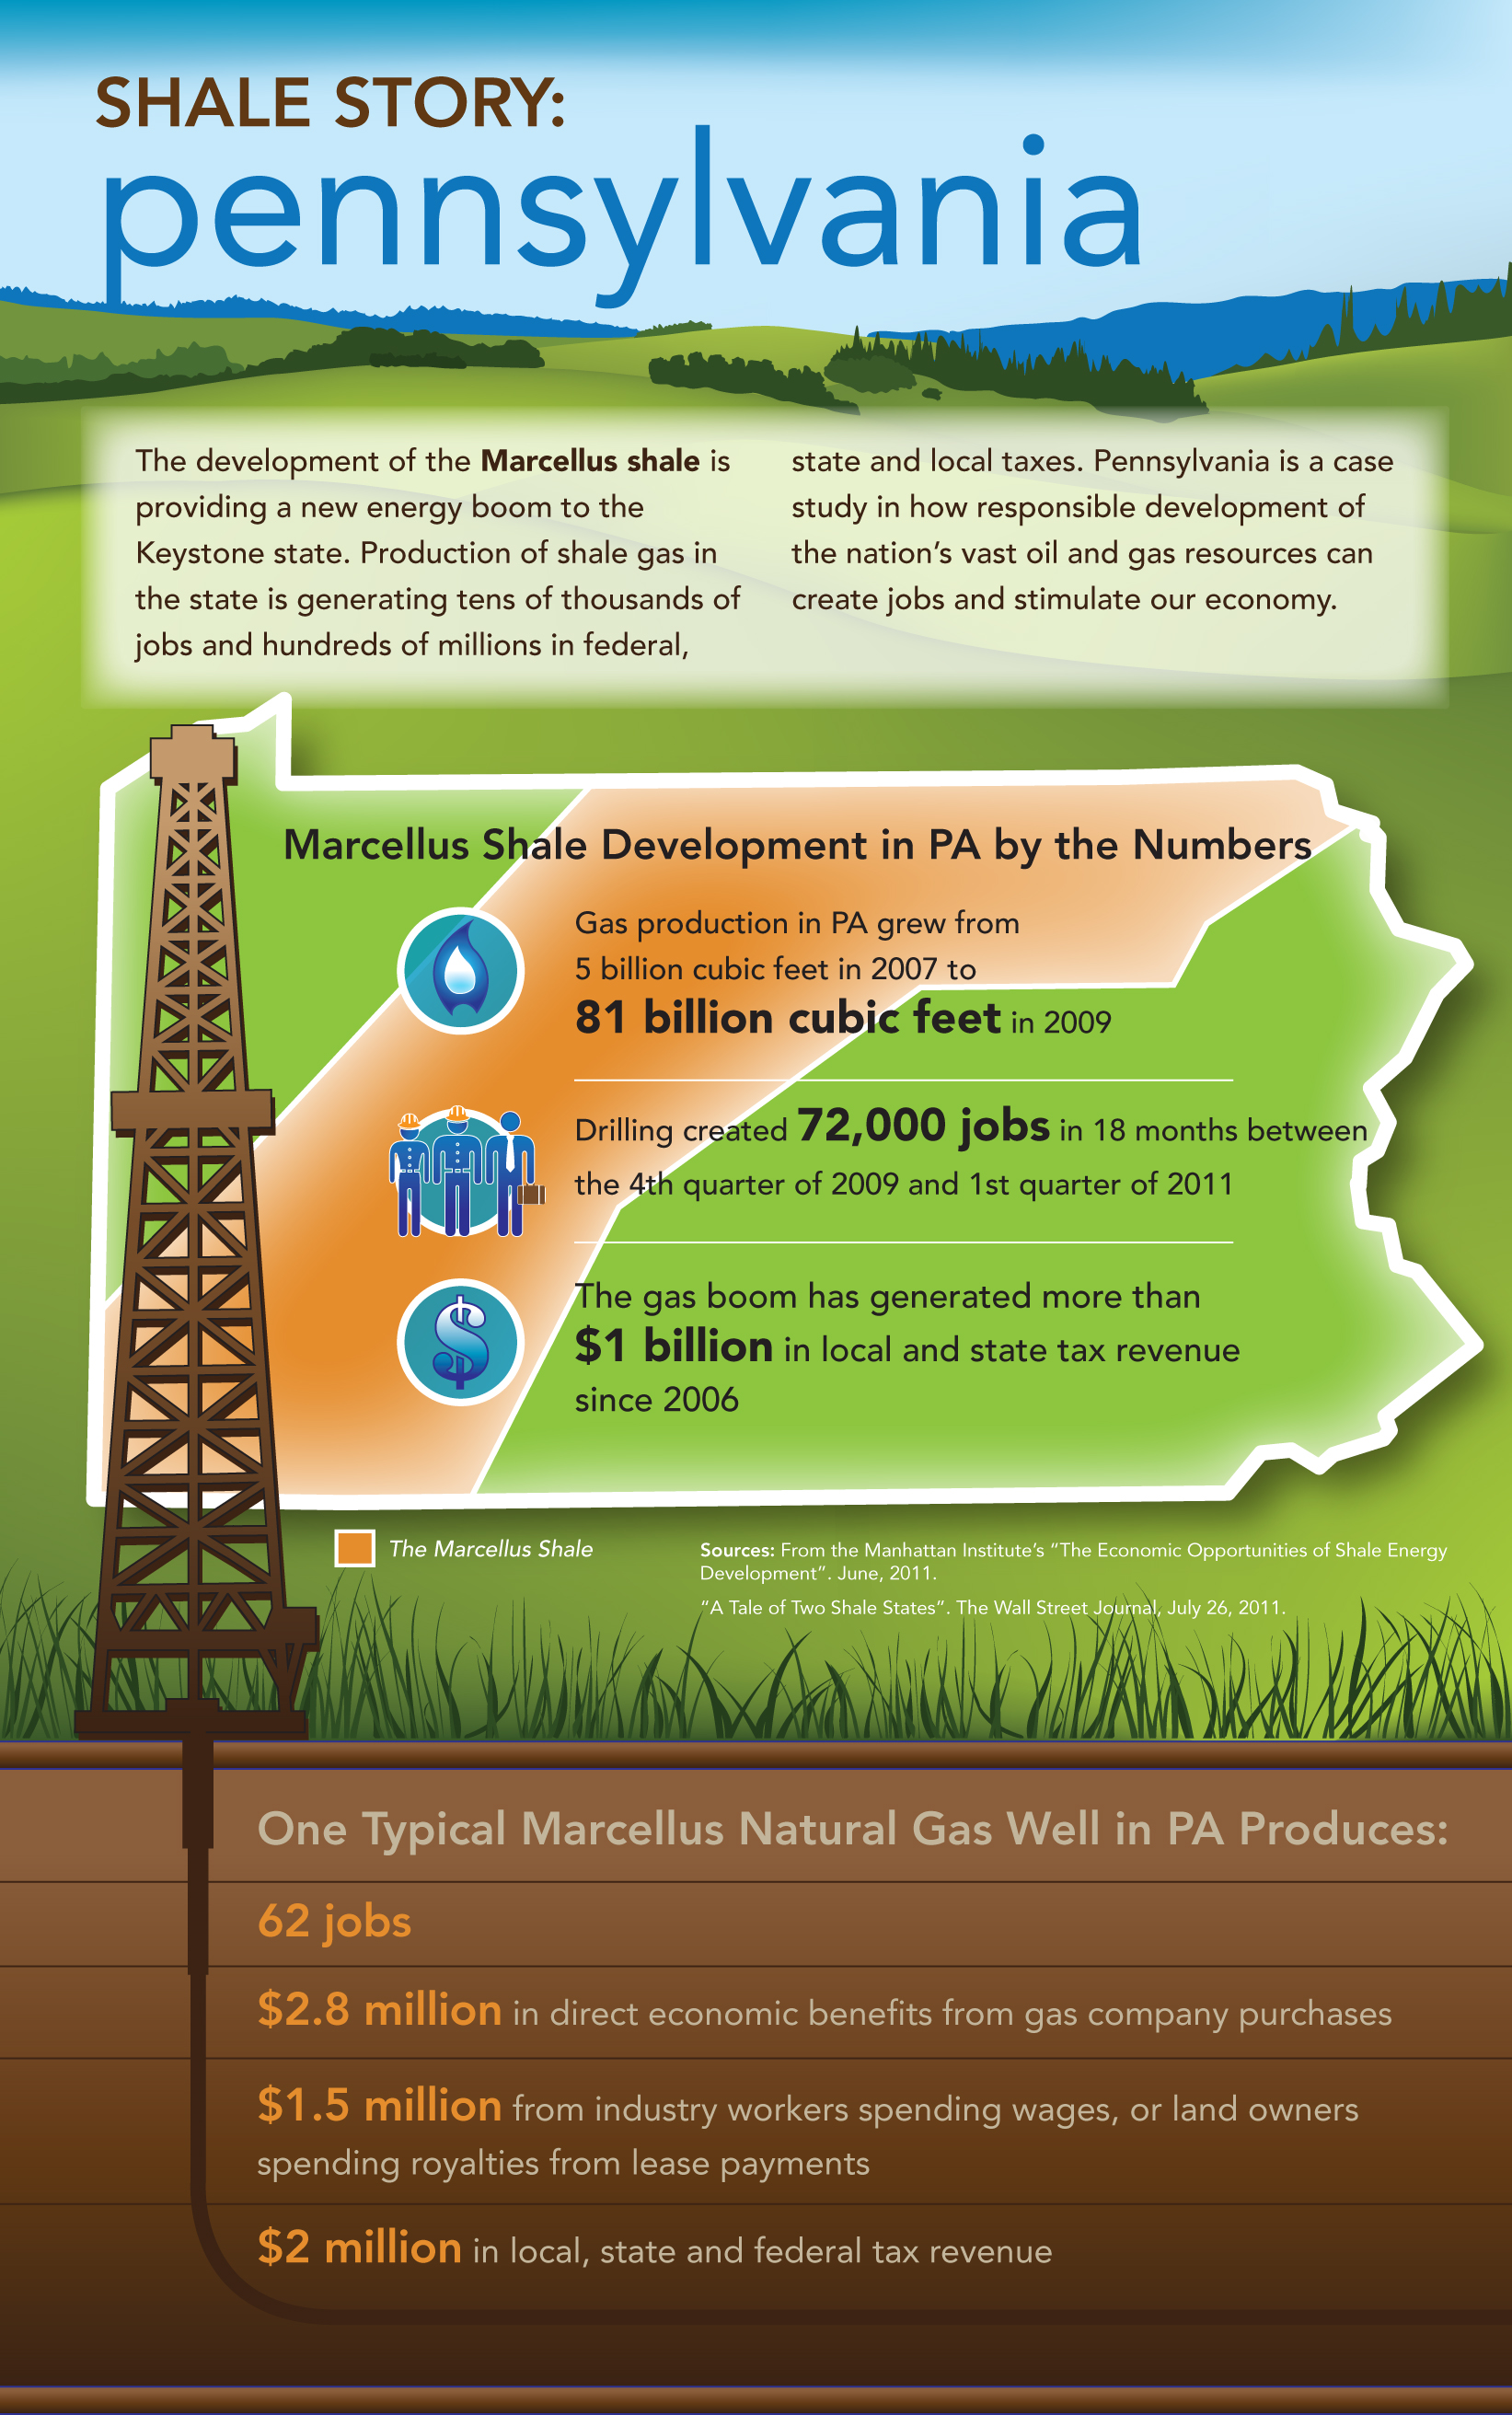 Shale Story: Pennsylvania [INFOGRAPHIC] - Infographic List